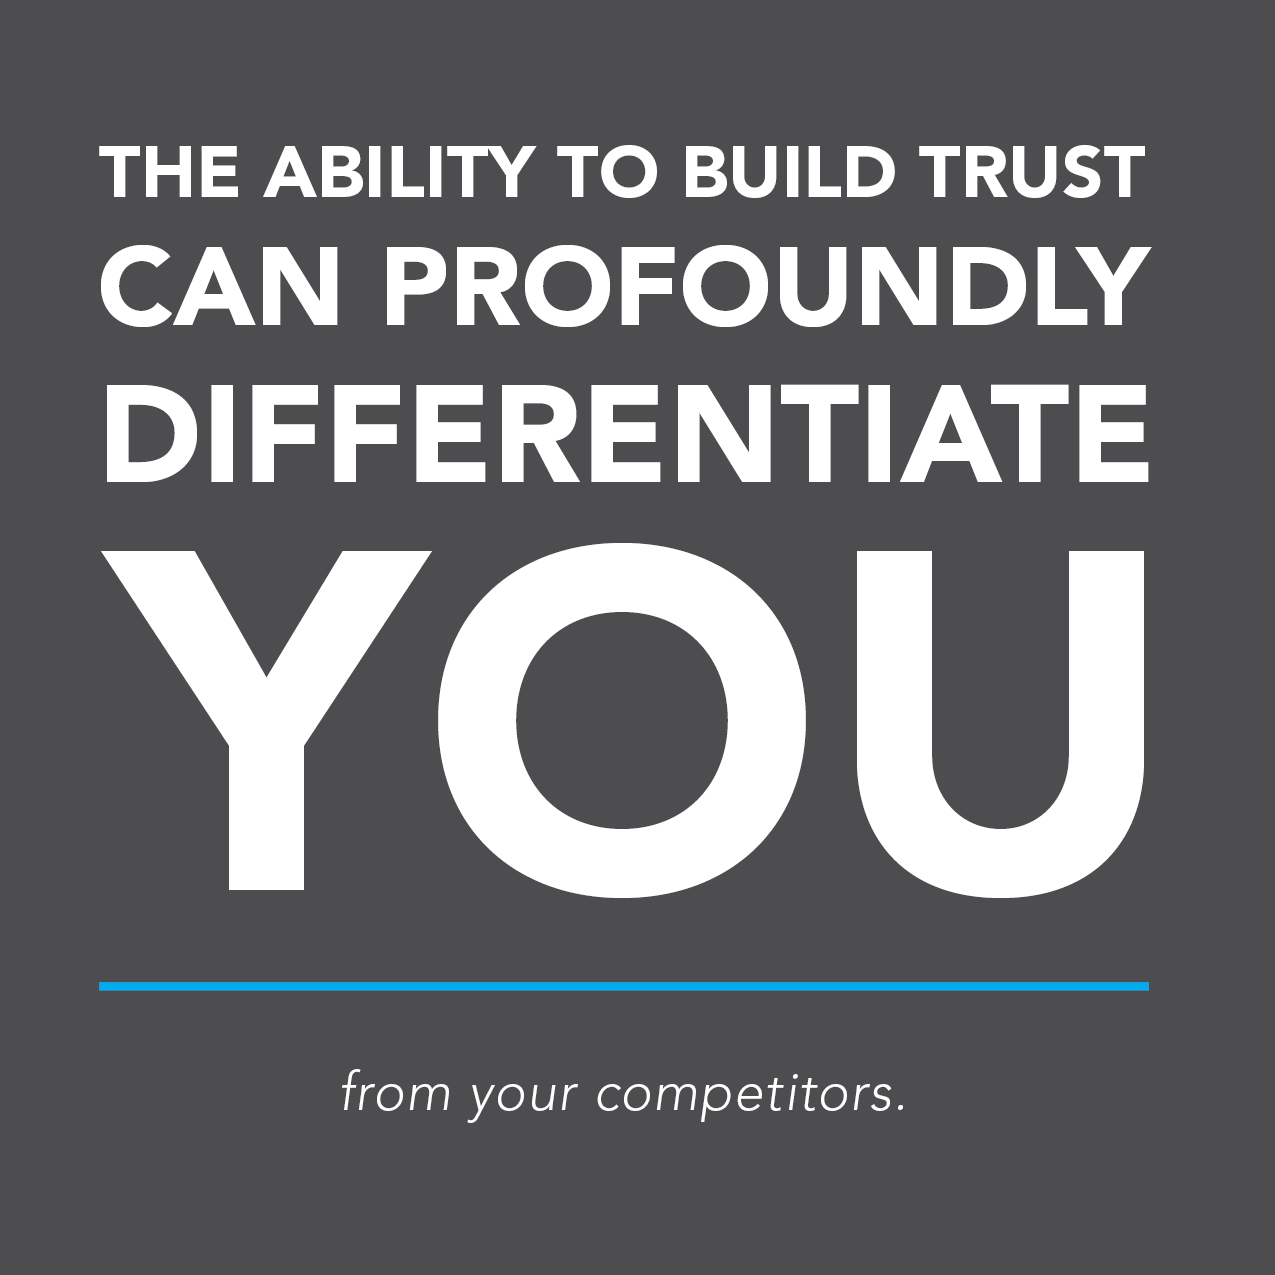 The ability to build trust can profoundly differentiate you